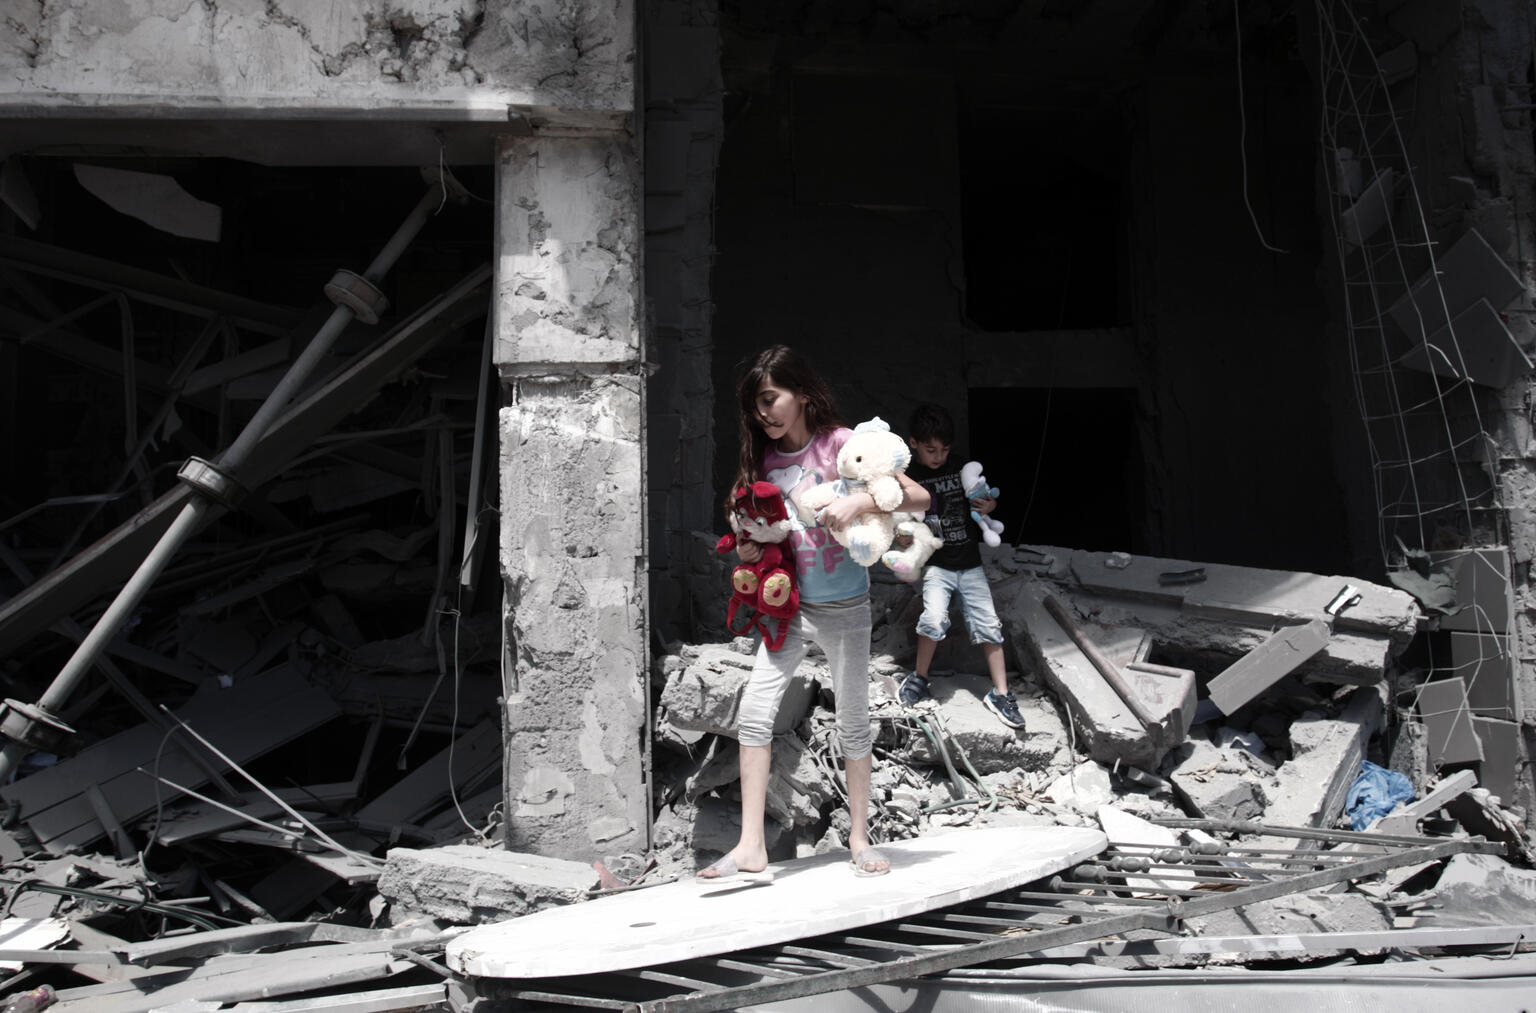 girl and boy coming out of ruins holding stuffed toys